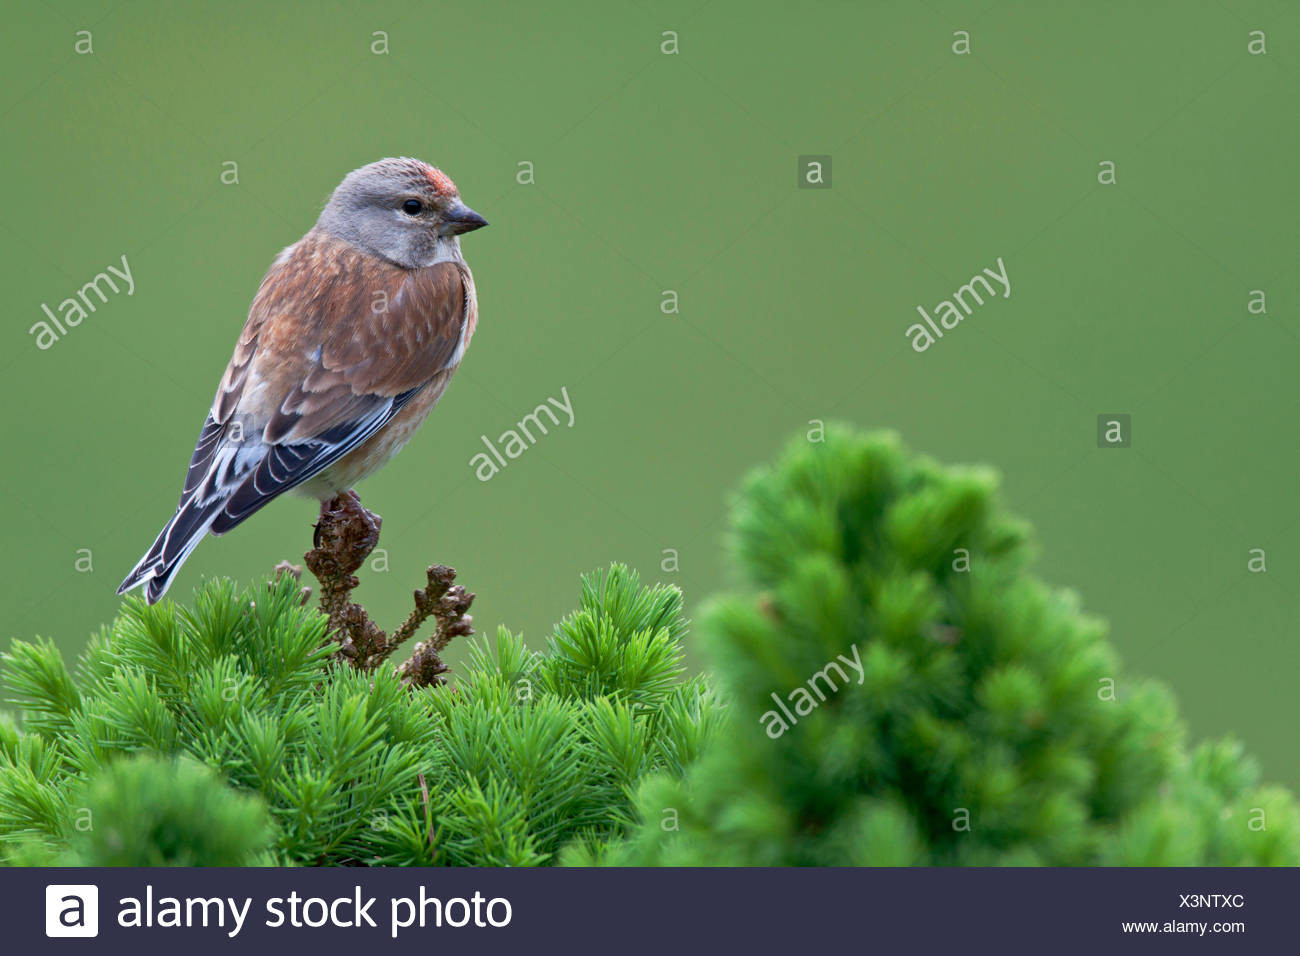 linnet (Carduelis cannabina, Acanthis cannabina), male sitting on a conifer tree, Germany, Schleswig-Holstein Stock Photo